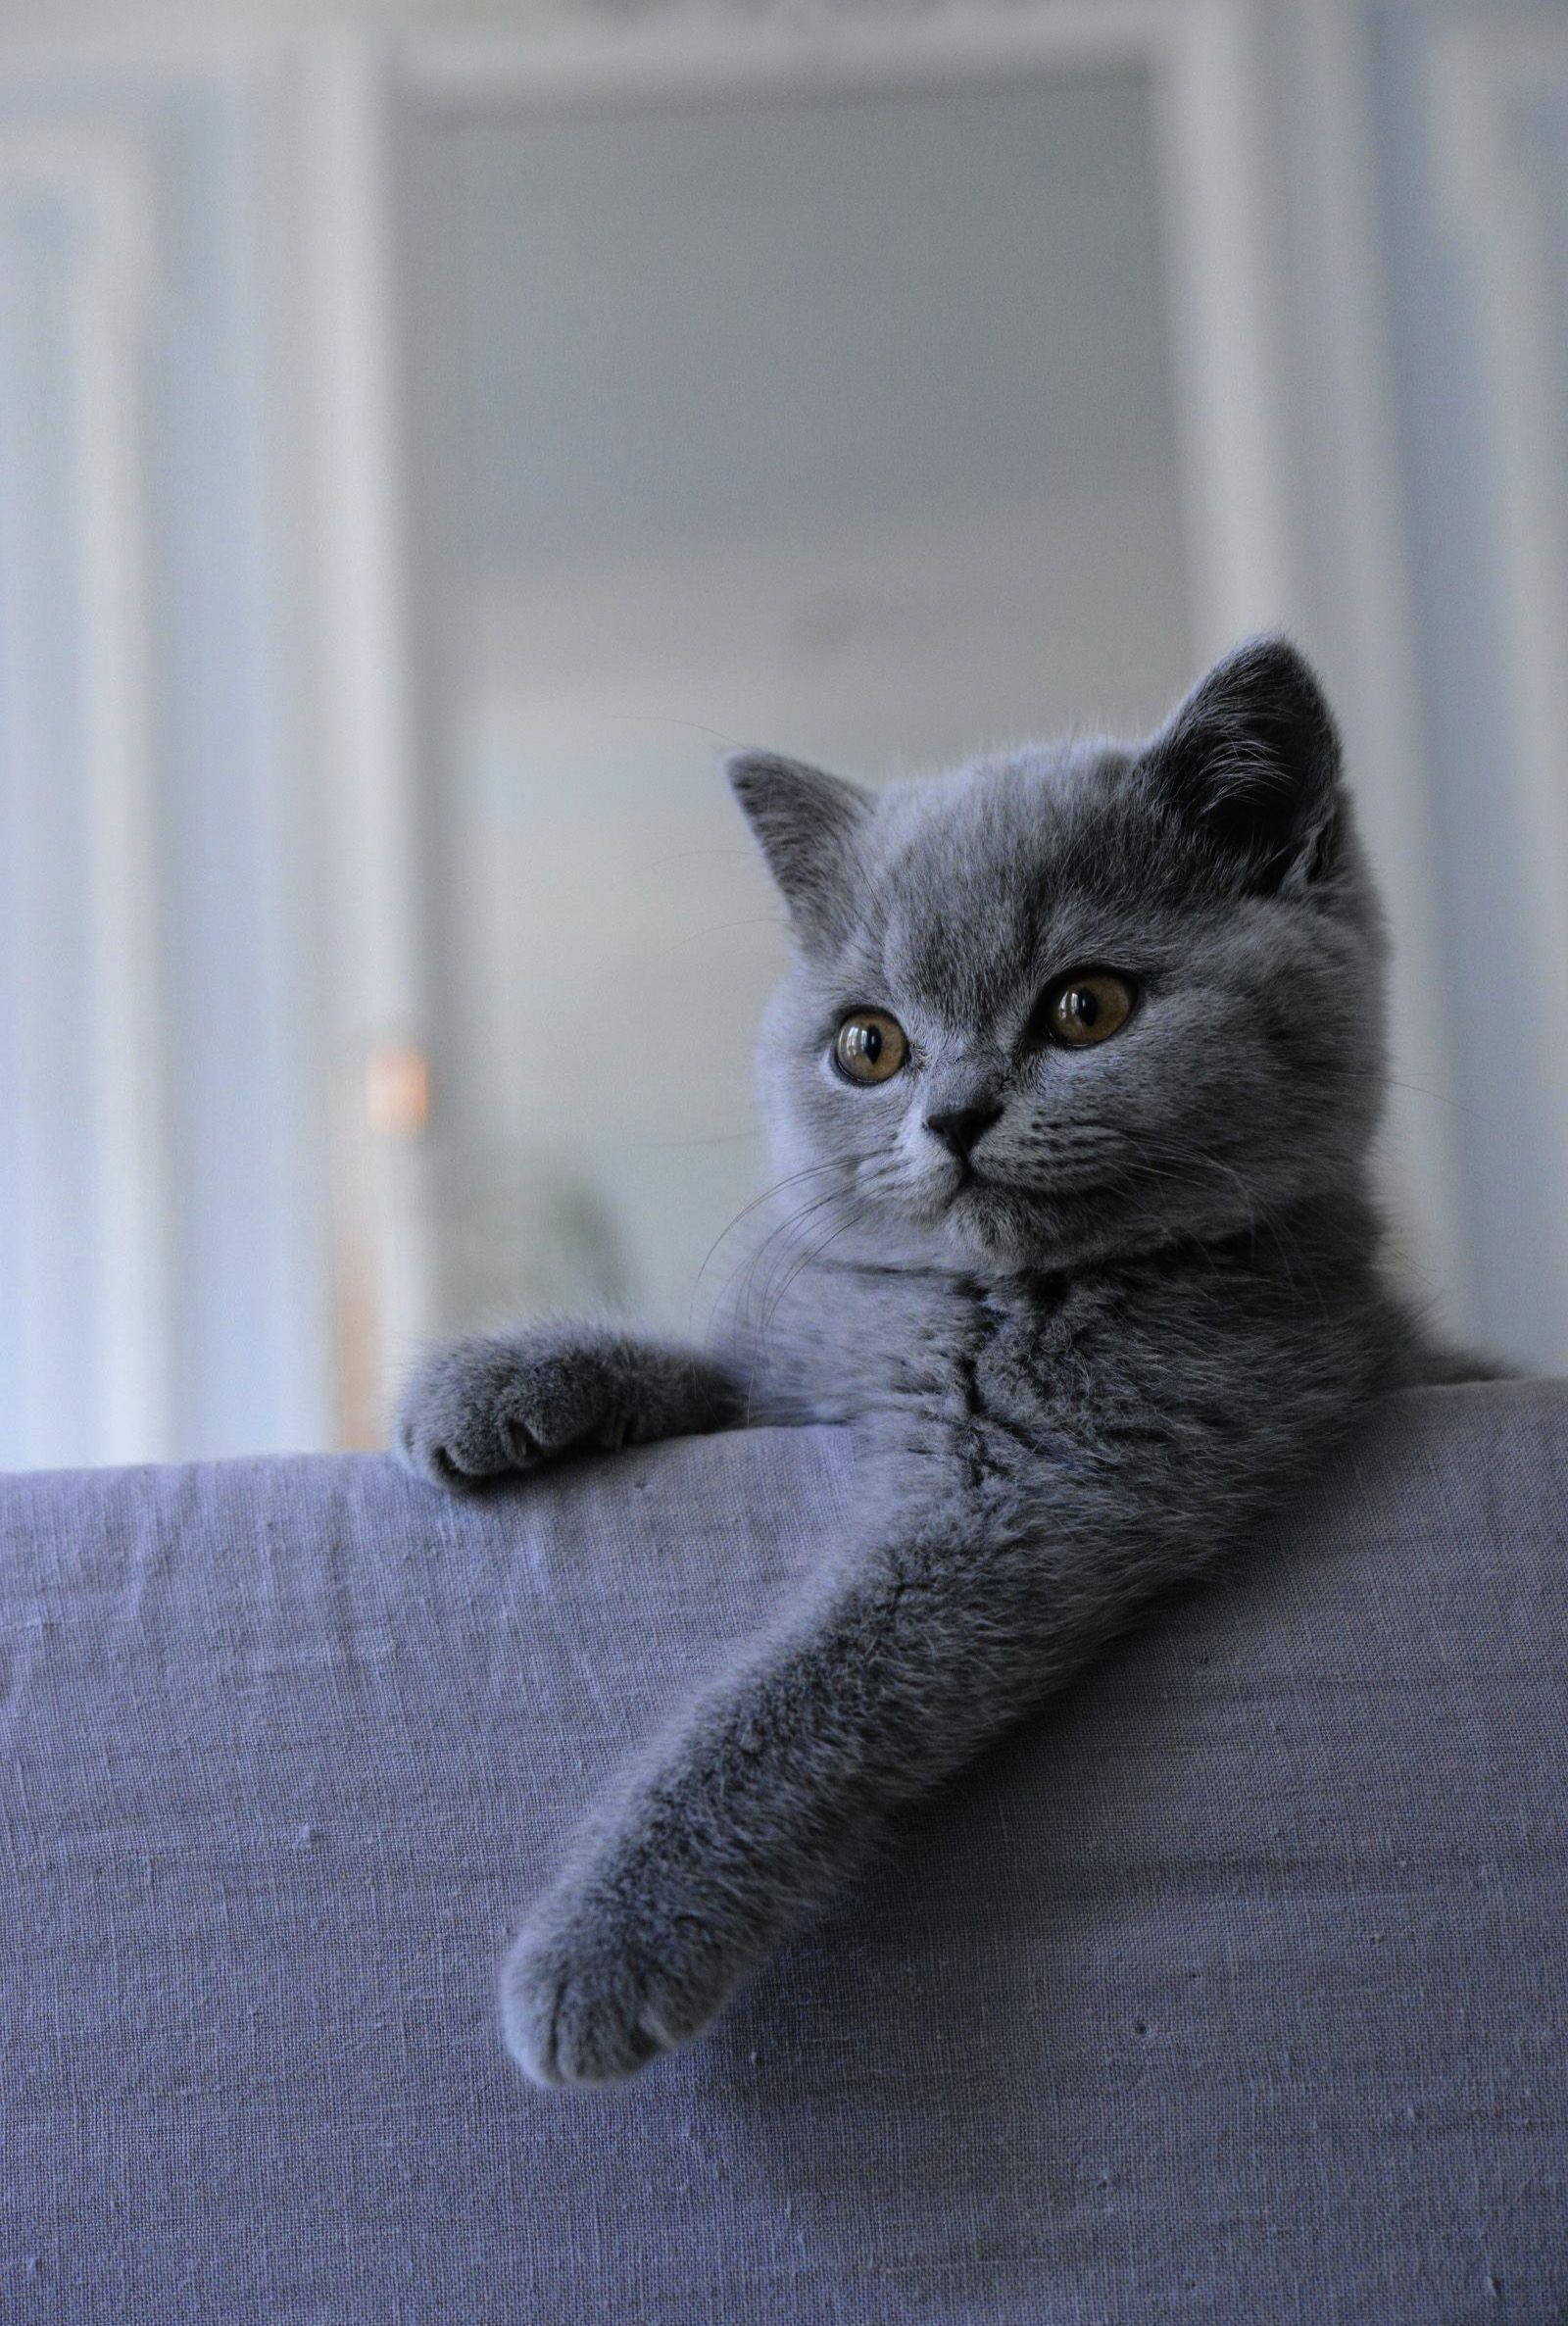 Cats Kittens Older Cat And Kittens Bed British Shorthair Kittens British Shorthair British Shorthair Cats